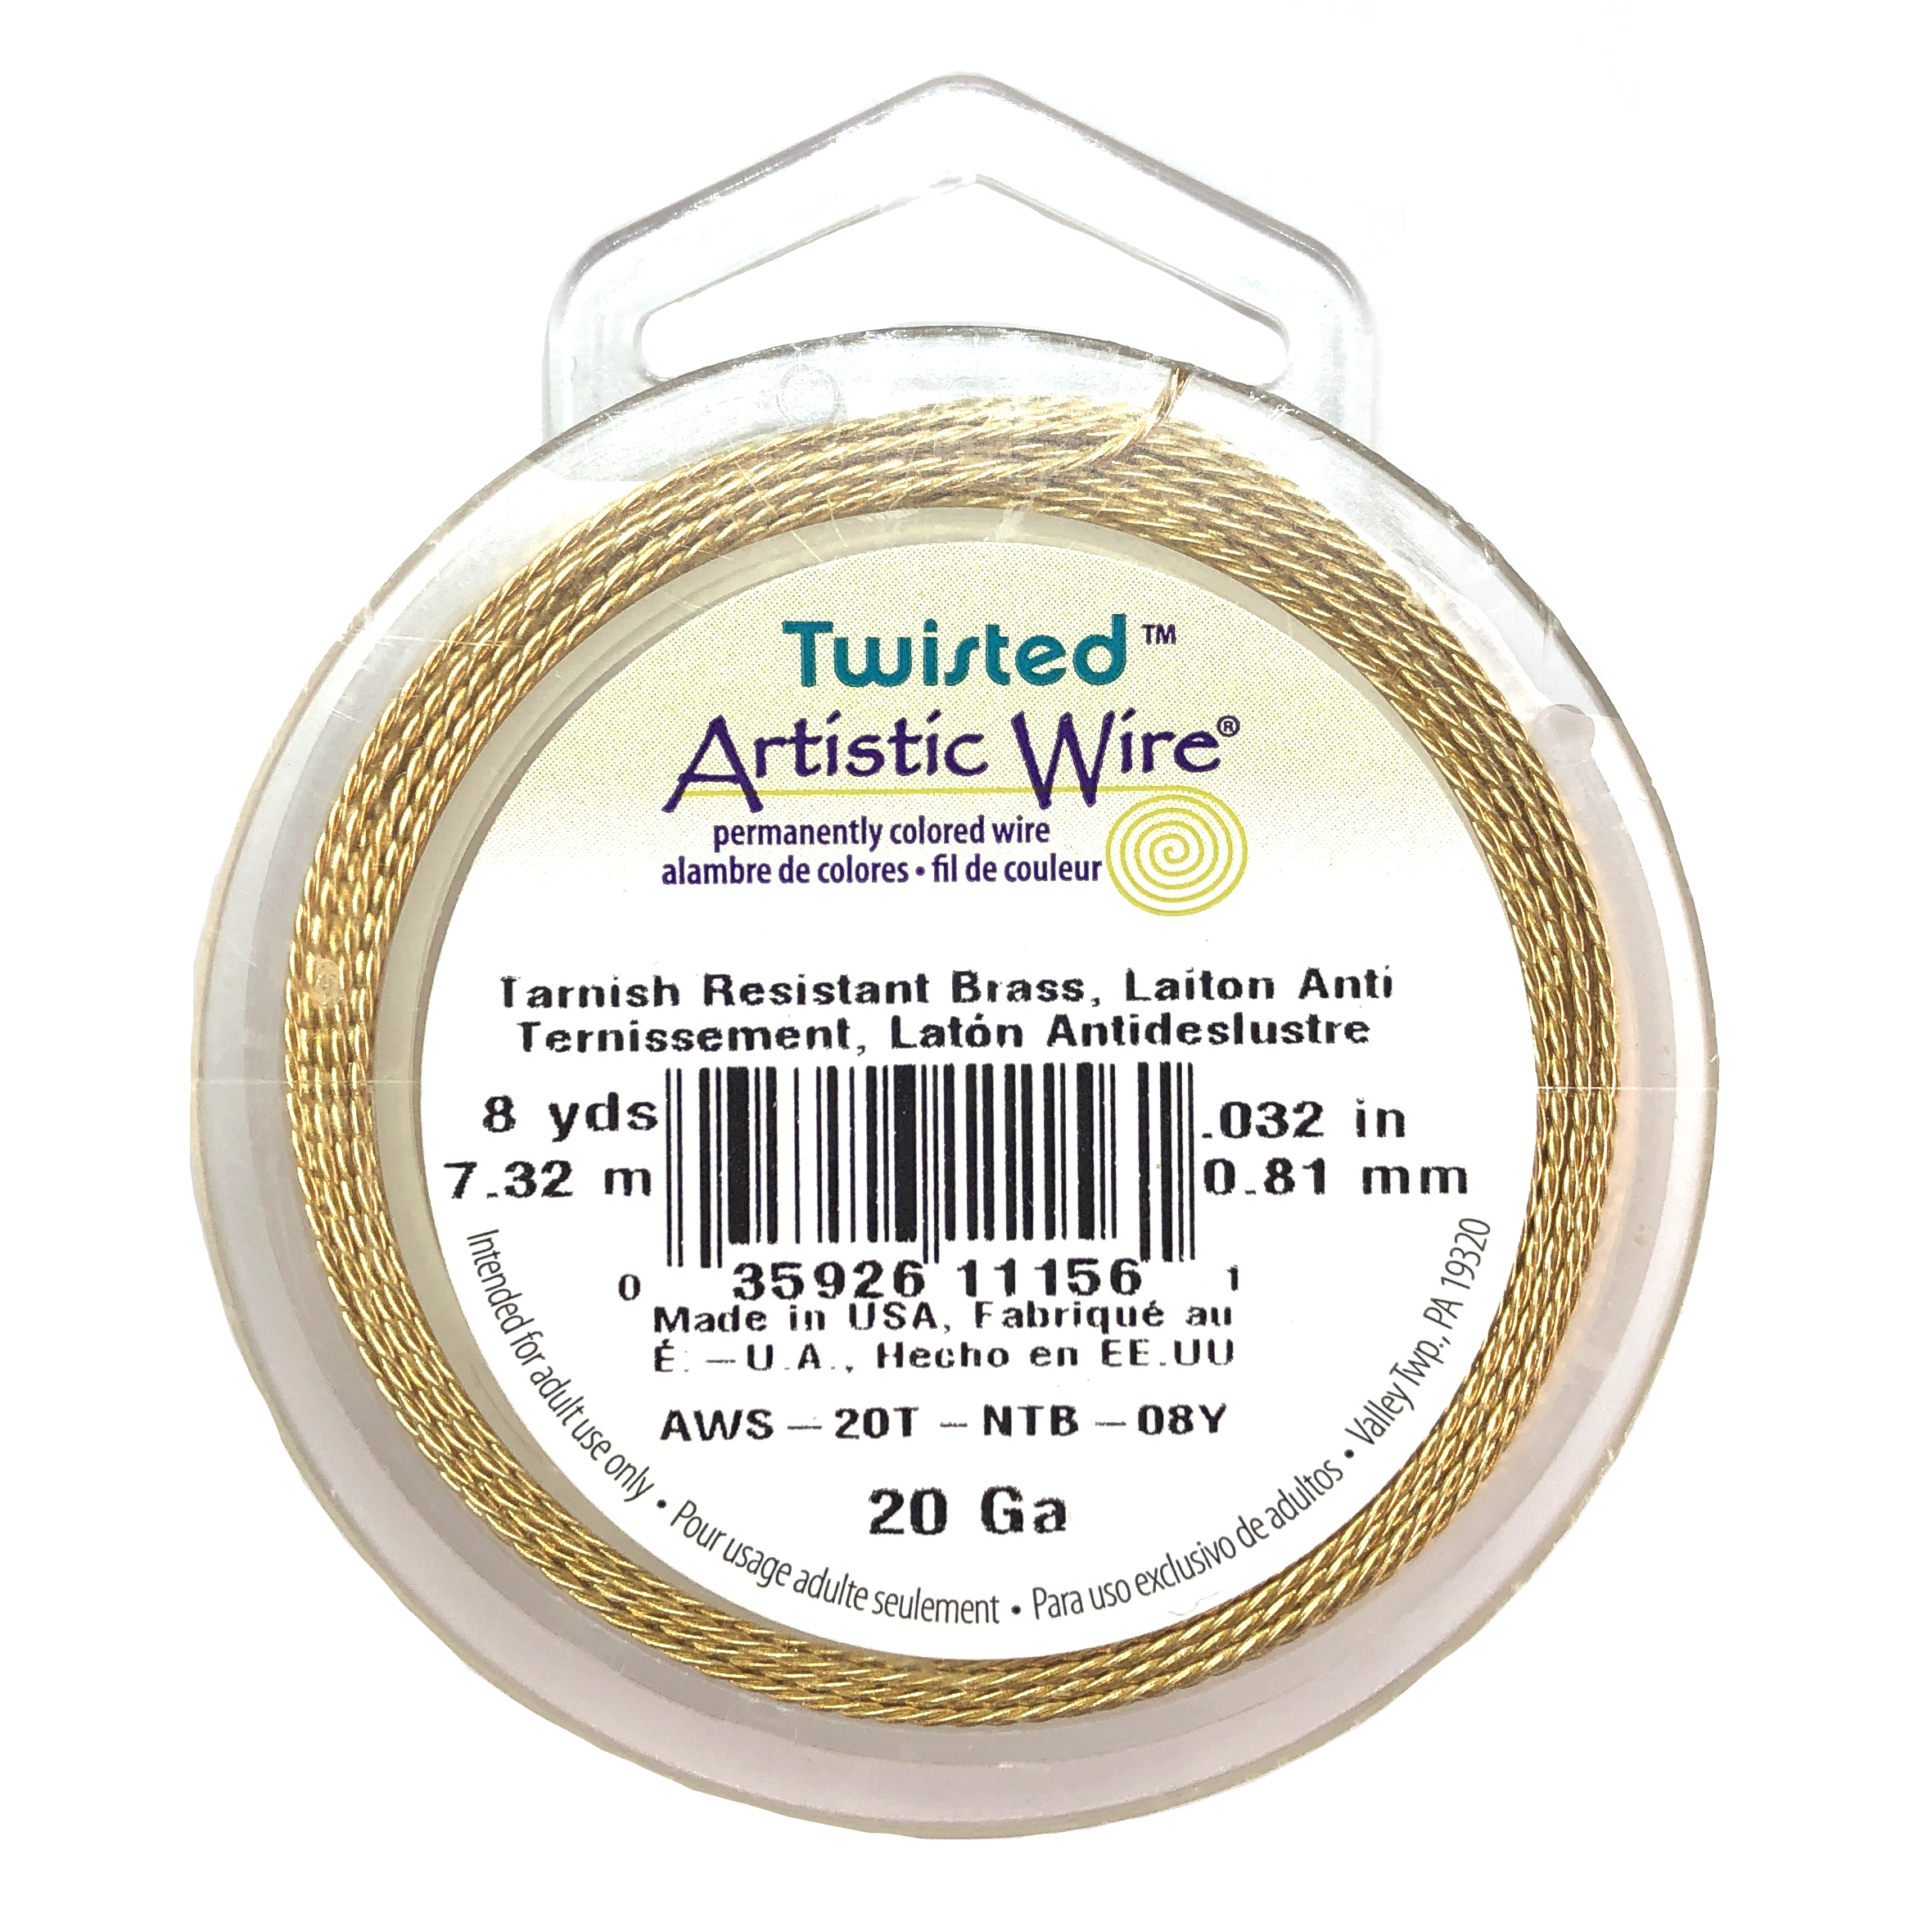 craft wire, 20 gauge, non tarnish brass, 09844, tarnish resistant brass wire, wire, crafting supplies, jewelry supplies, 8 yards, twisted wire, twisted rope design, B'sue Boutiques, jewelry making